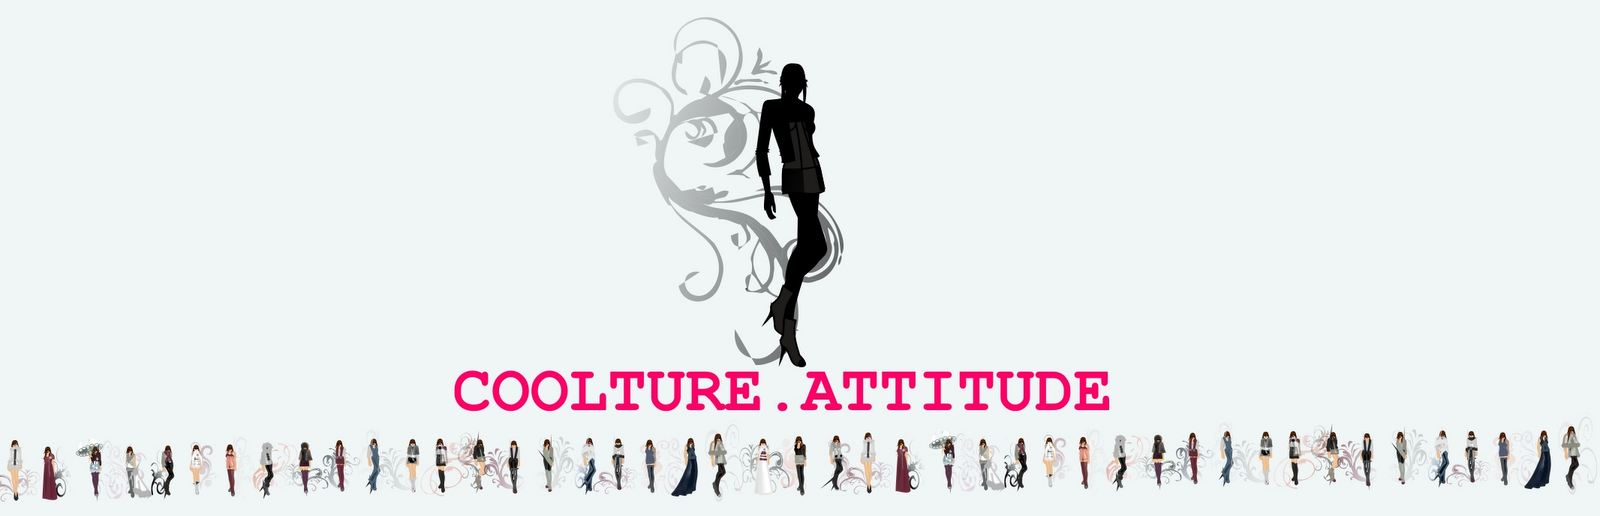 COOLTURE.ATTITUDE